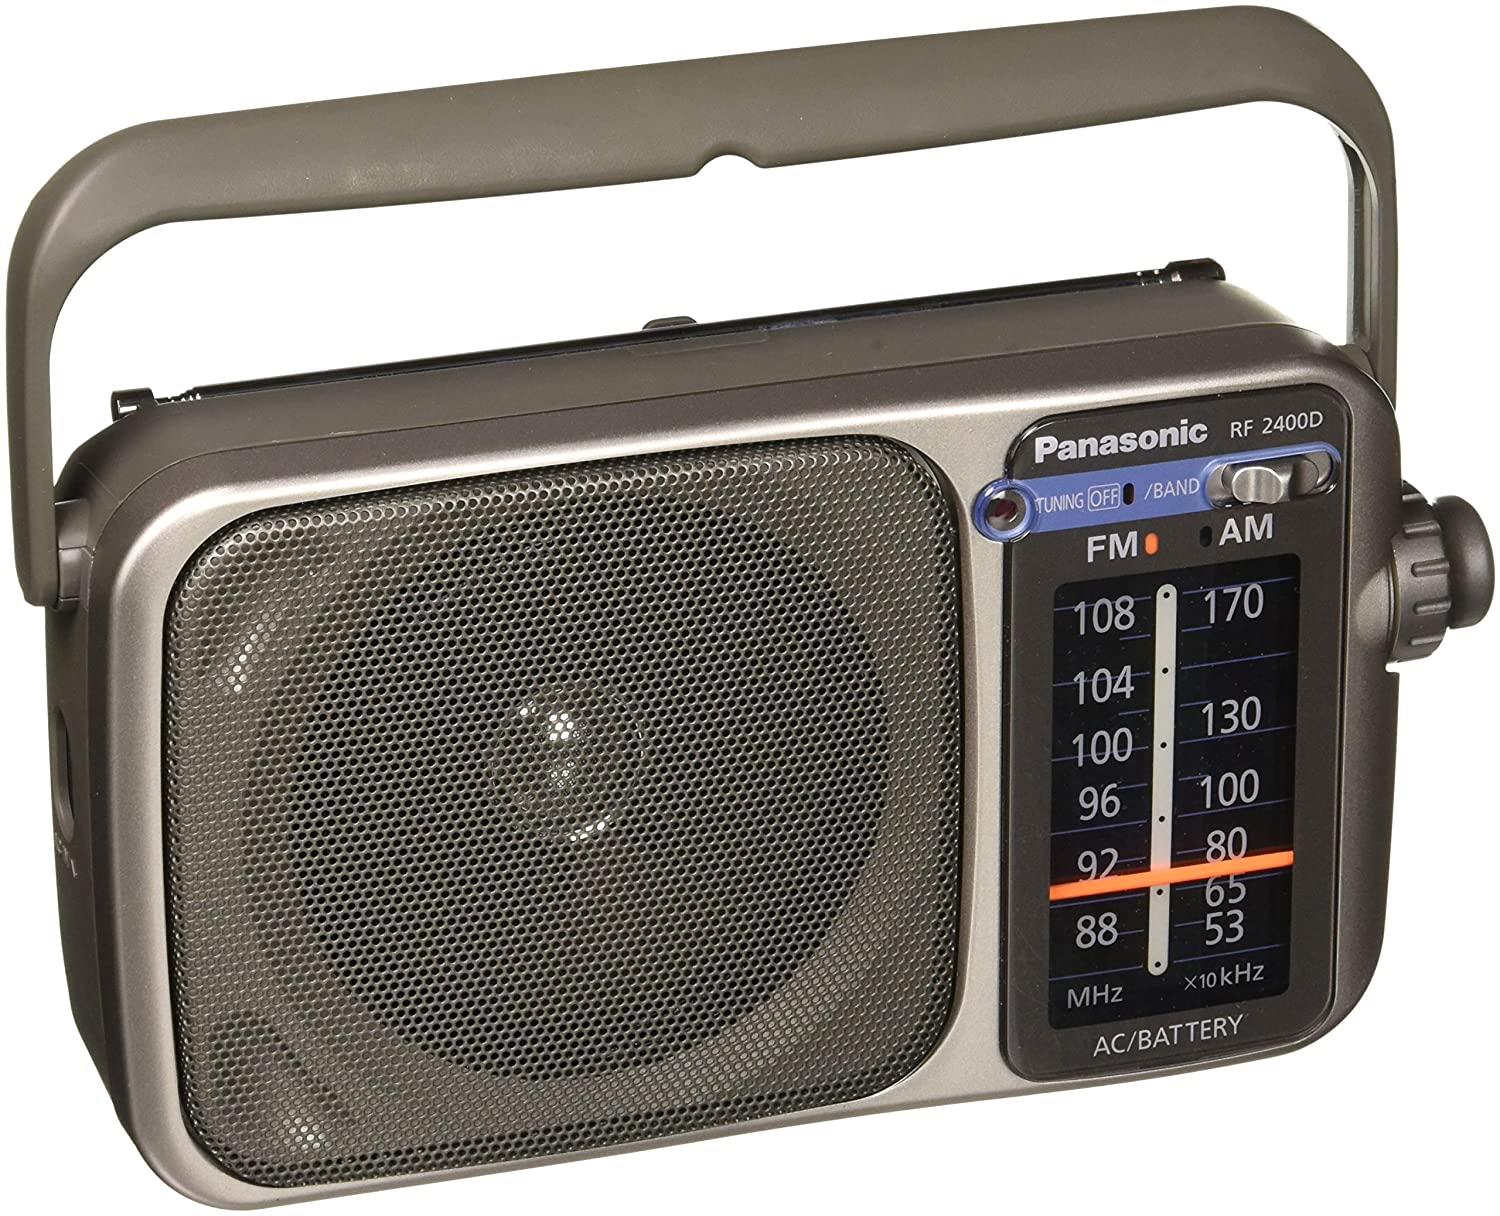 Panasonic RF-2400D AM / FM Radio